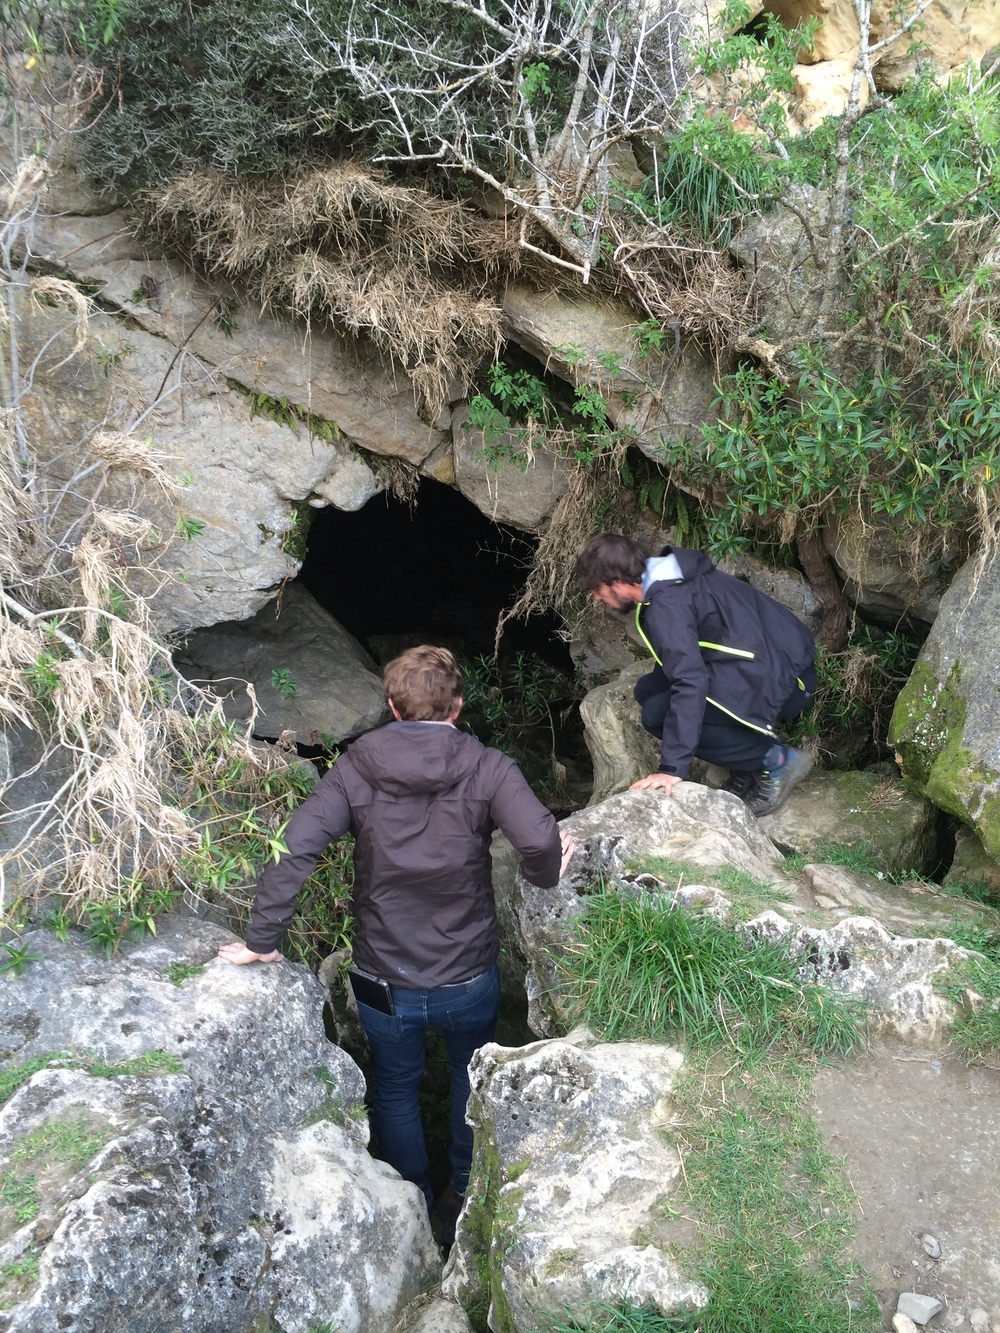 Max & Anatol investigating the entrance to the Limestone Caves